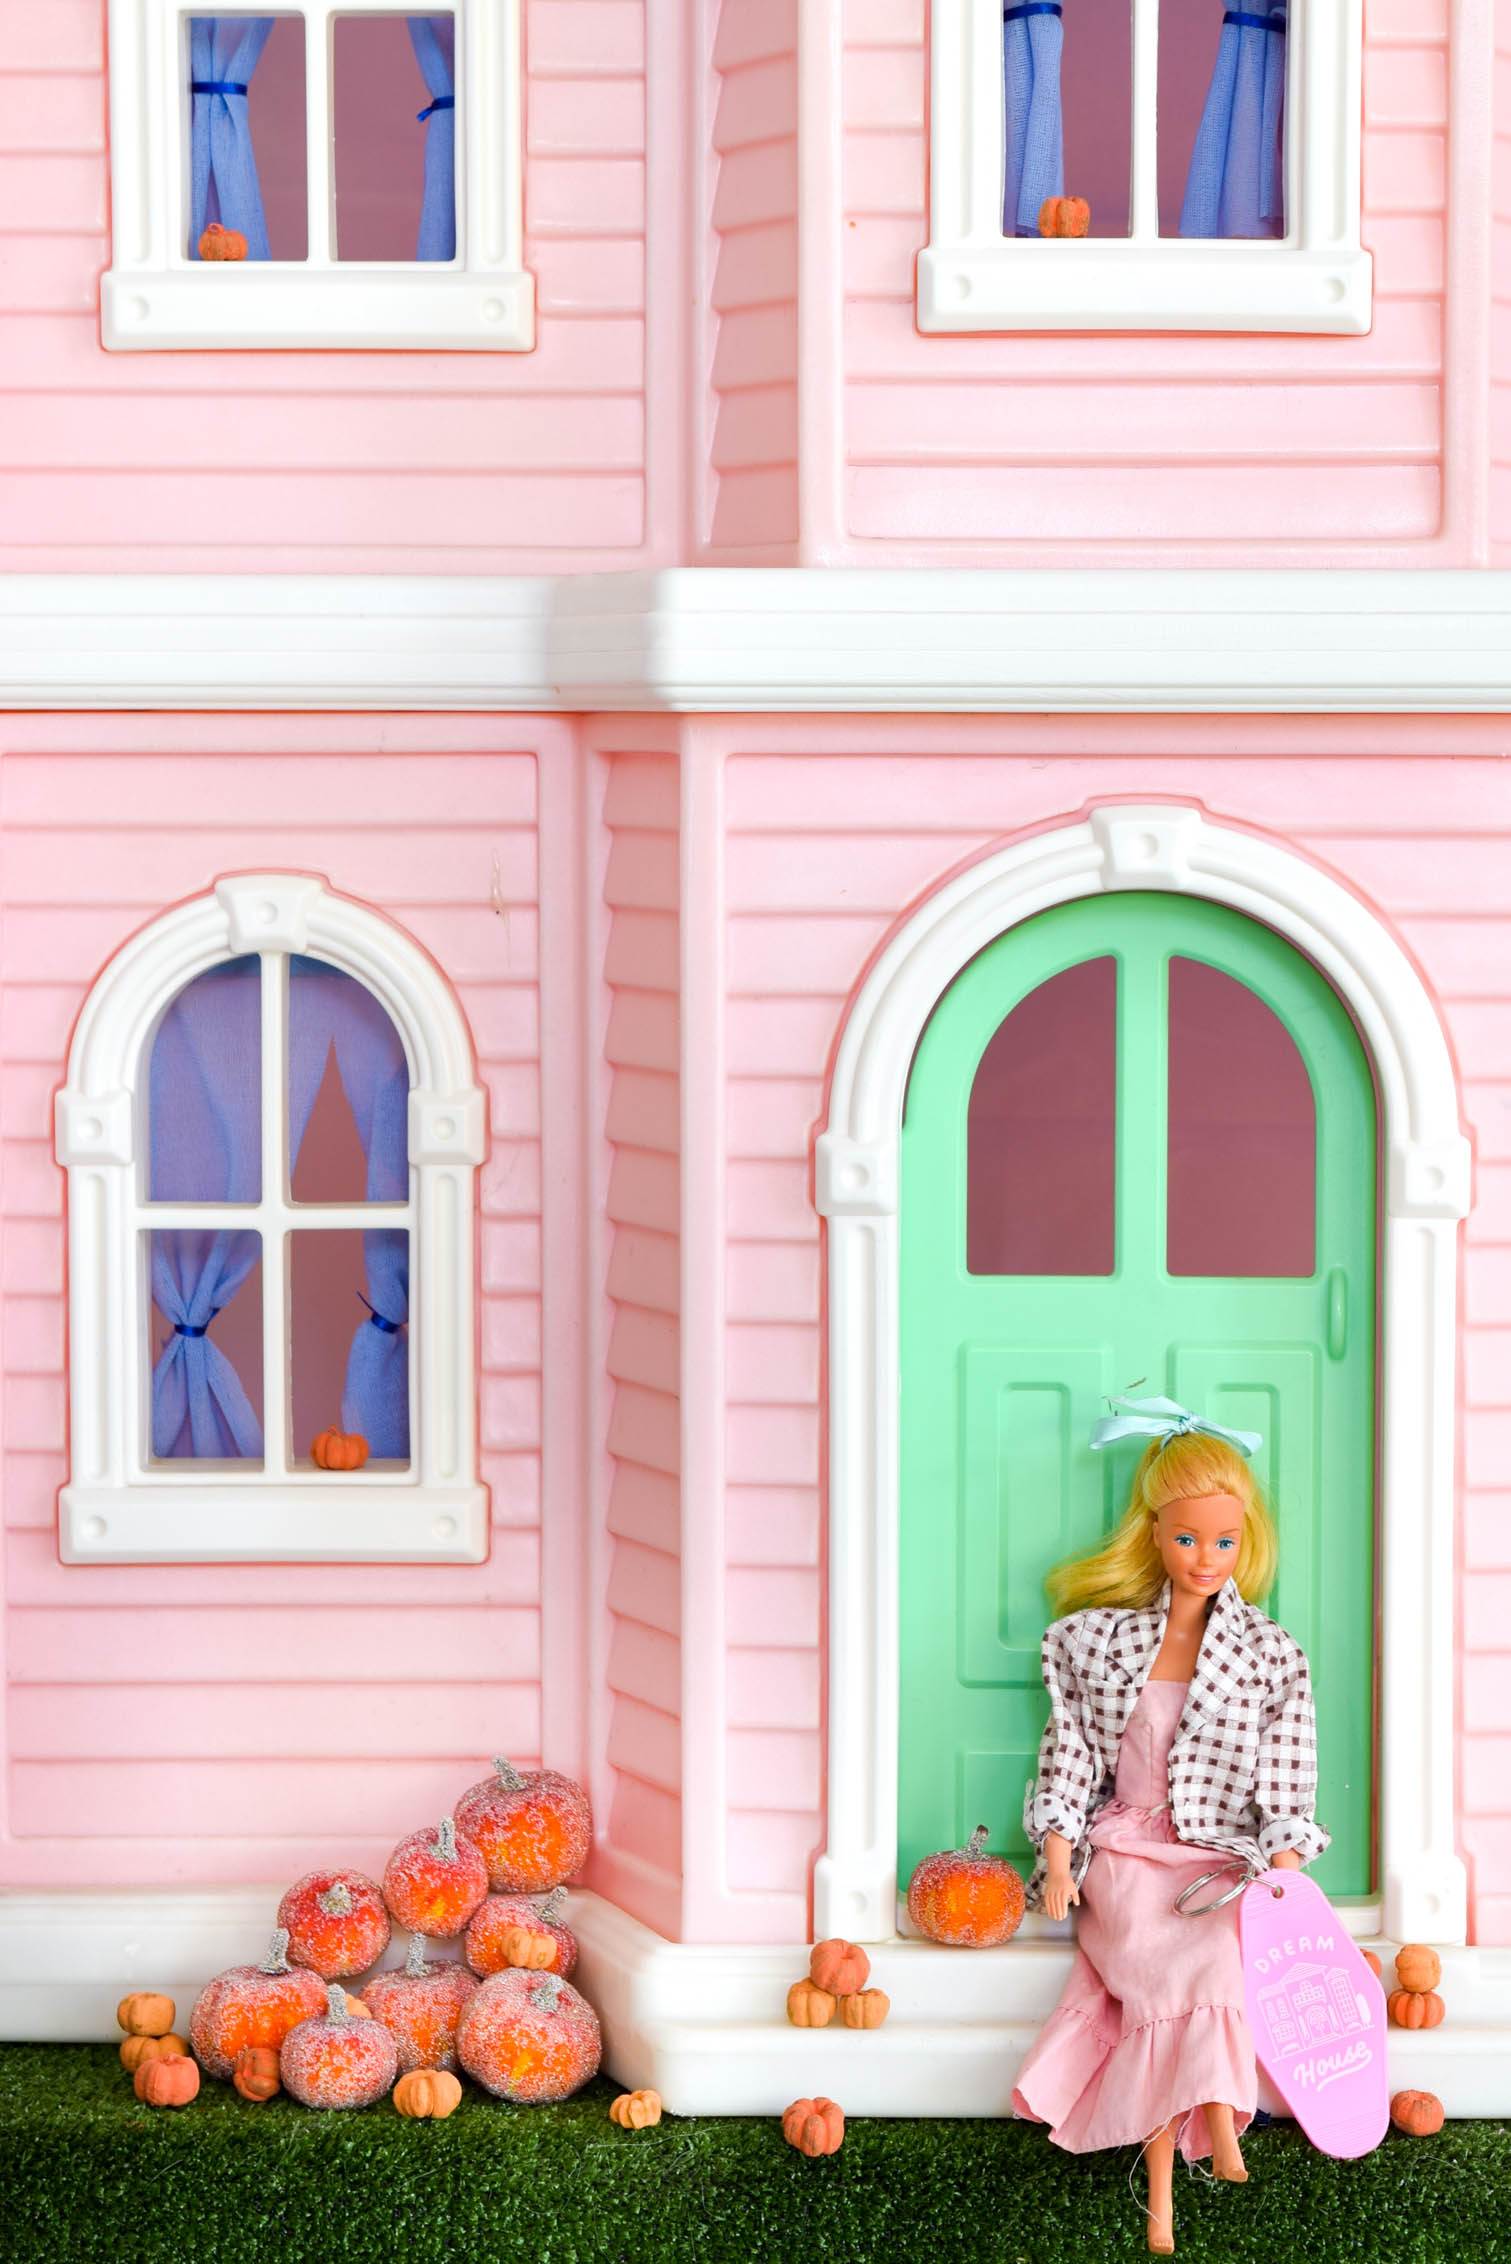 barbie doll sitting on stoop of dream house with pumpkins around